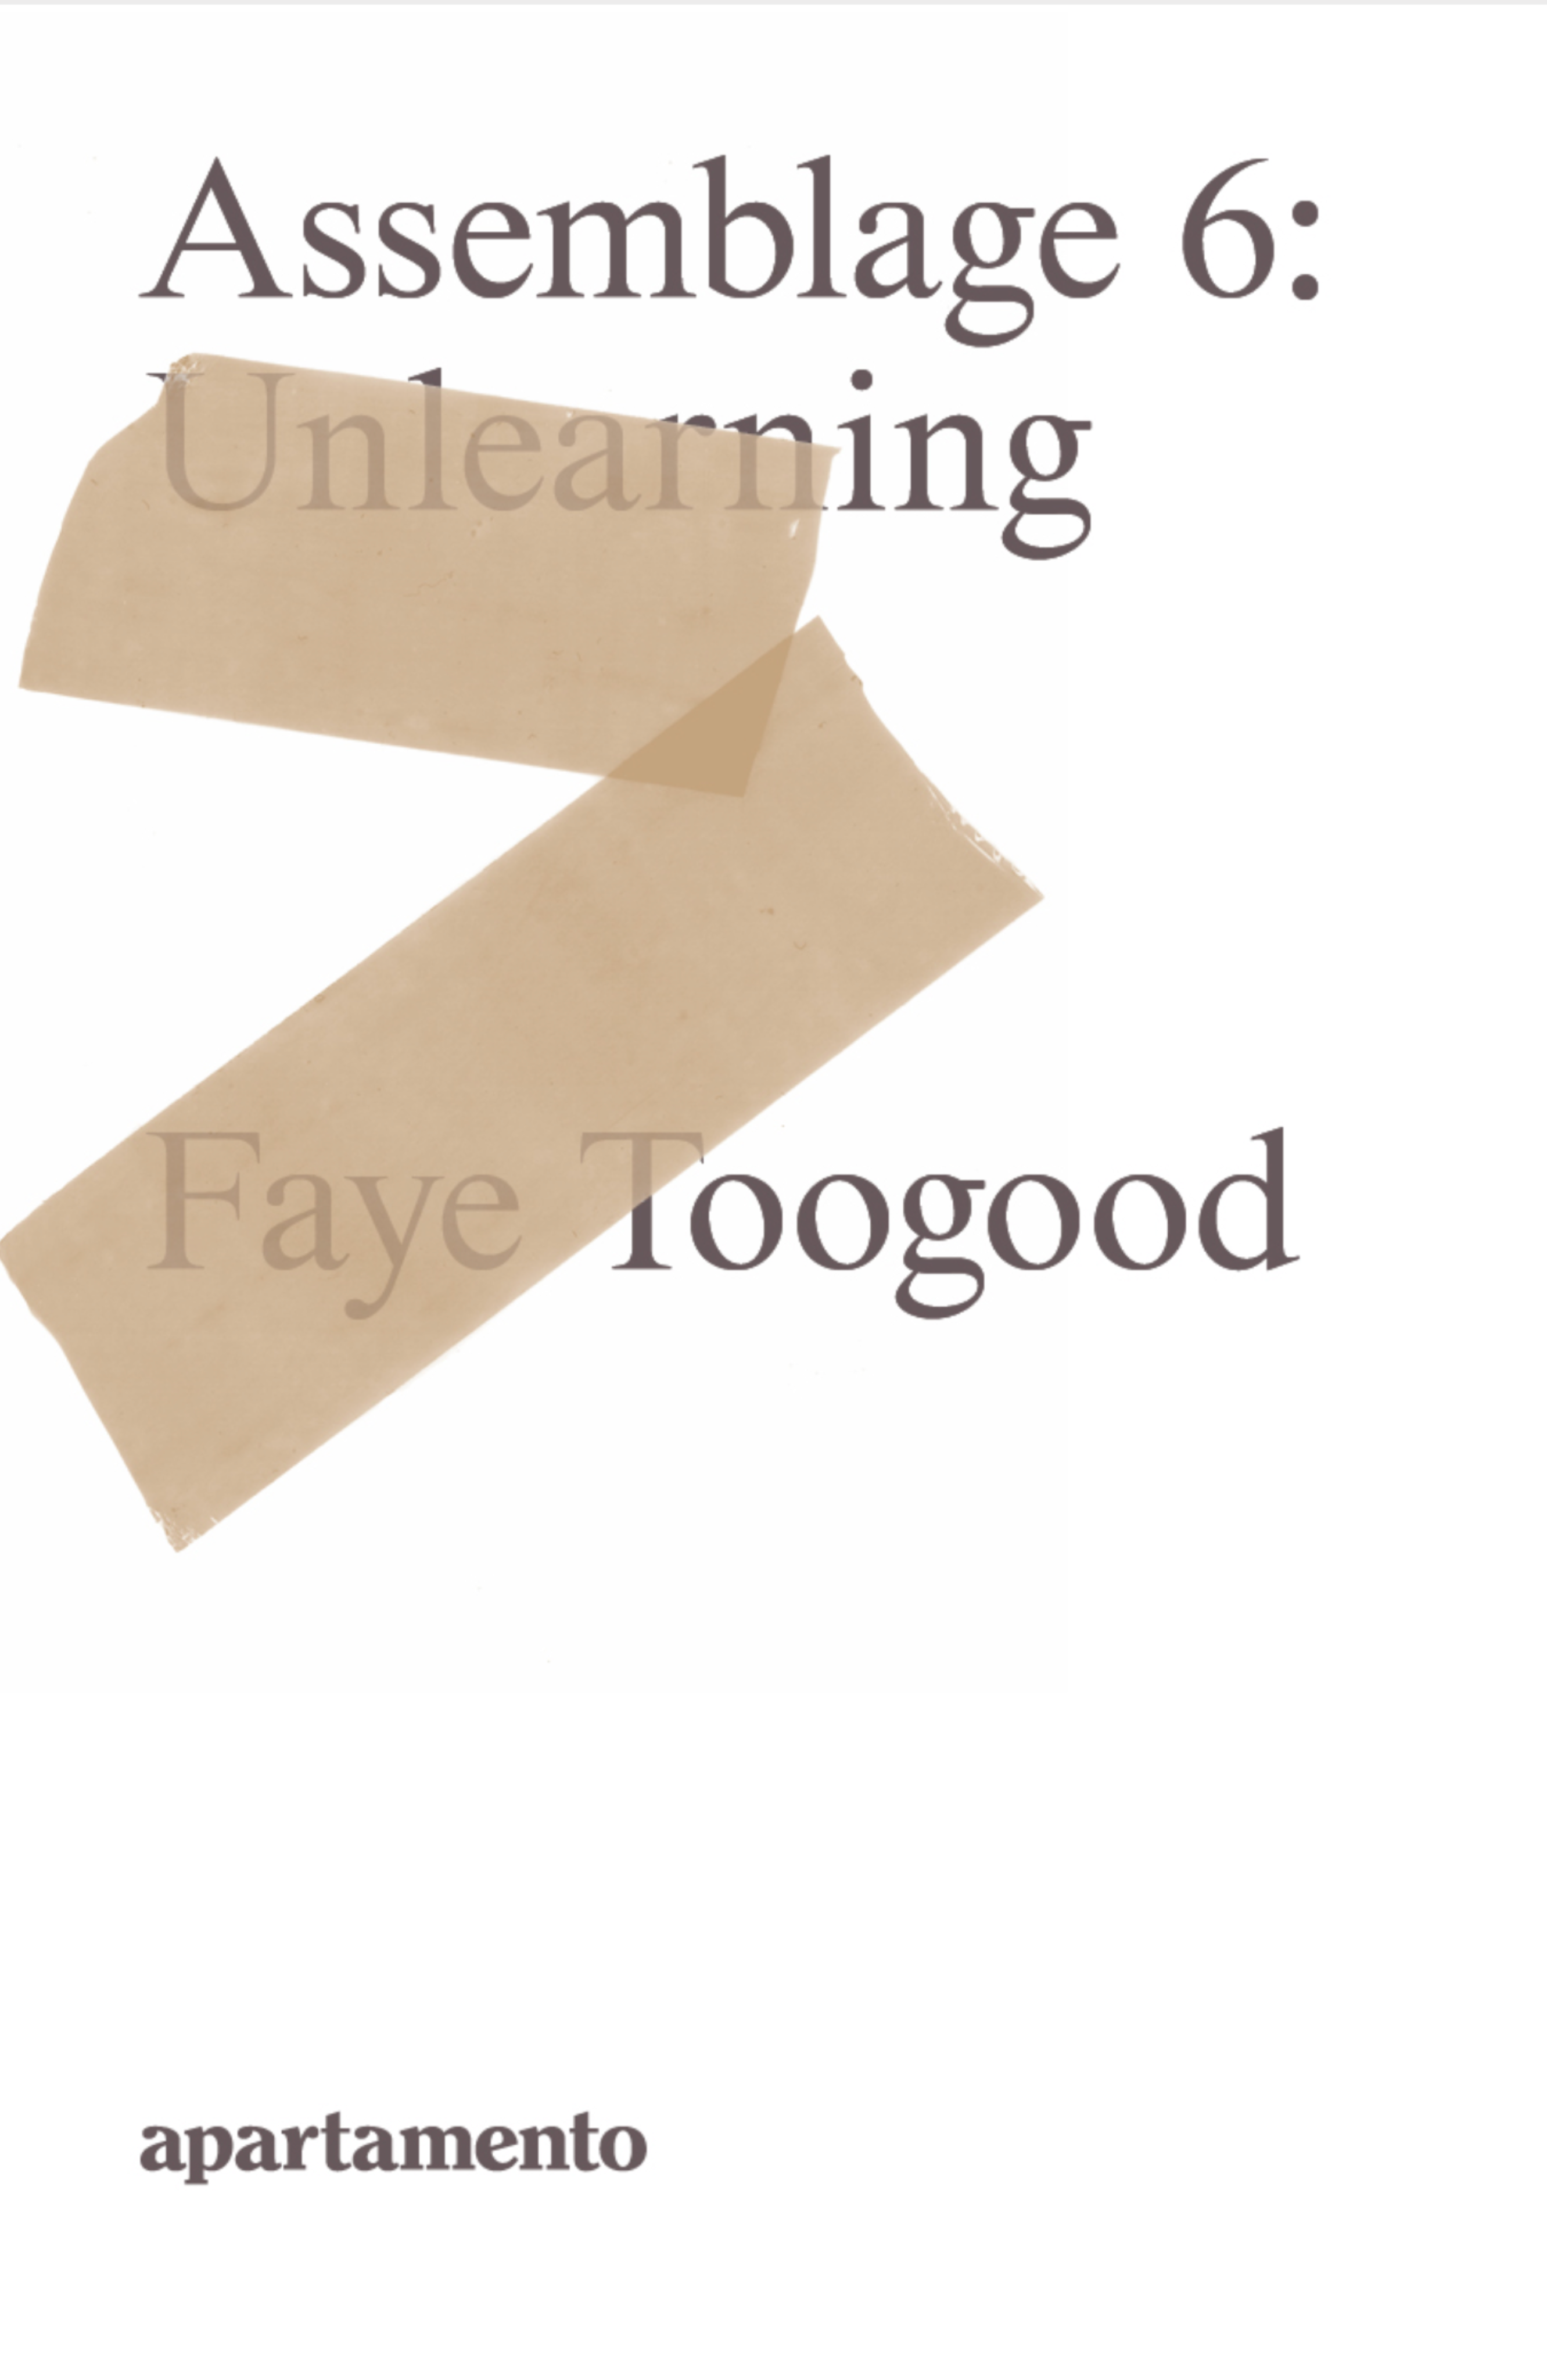 Apartamento Faye Toogood: Assemblage 6,Unlearning